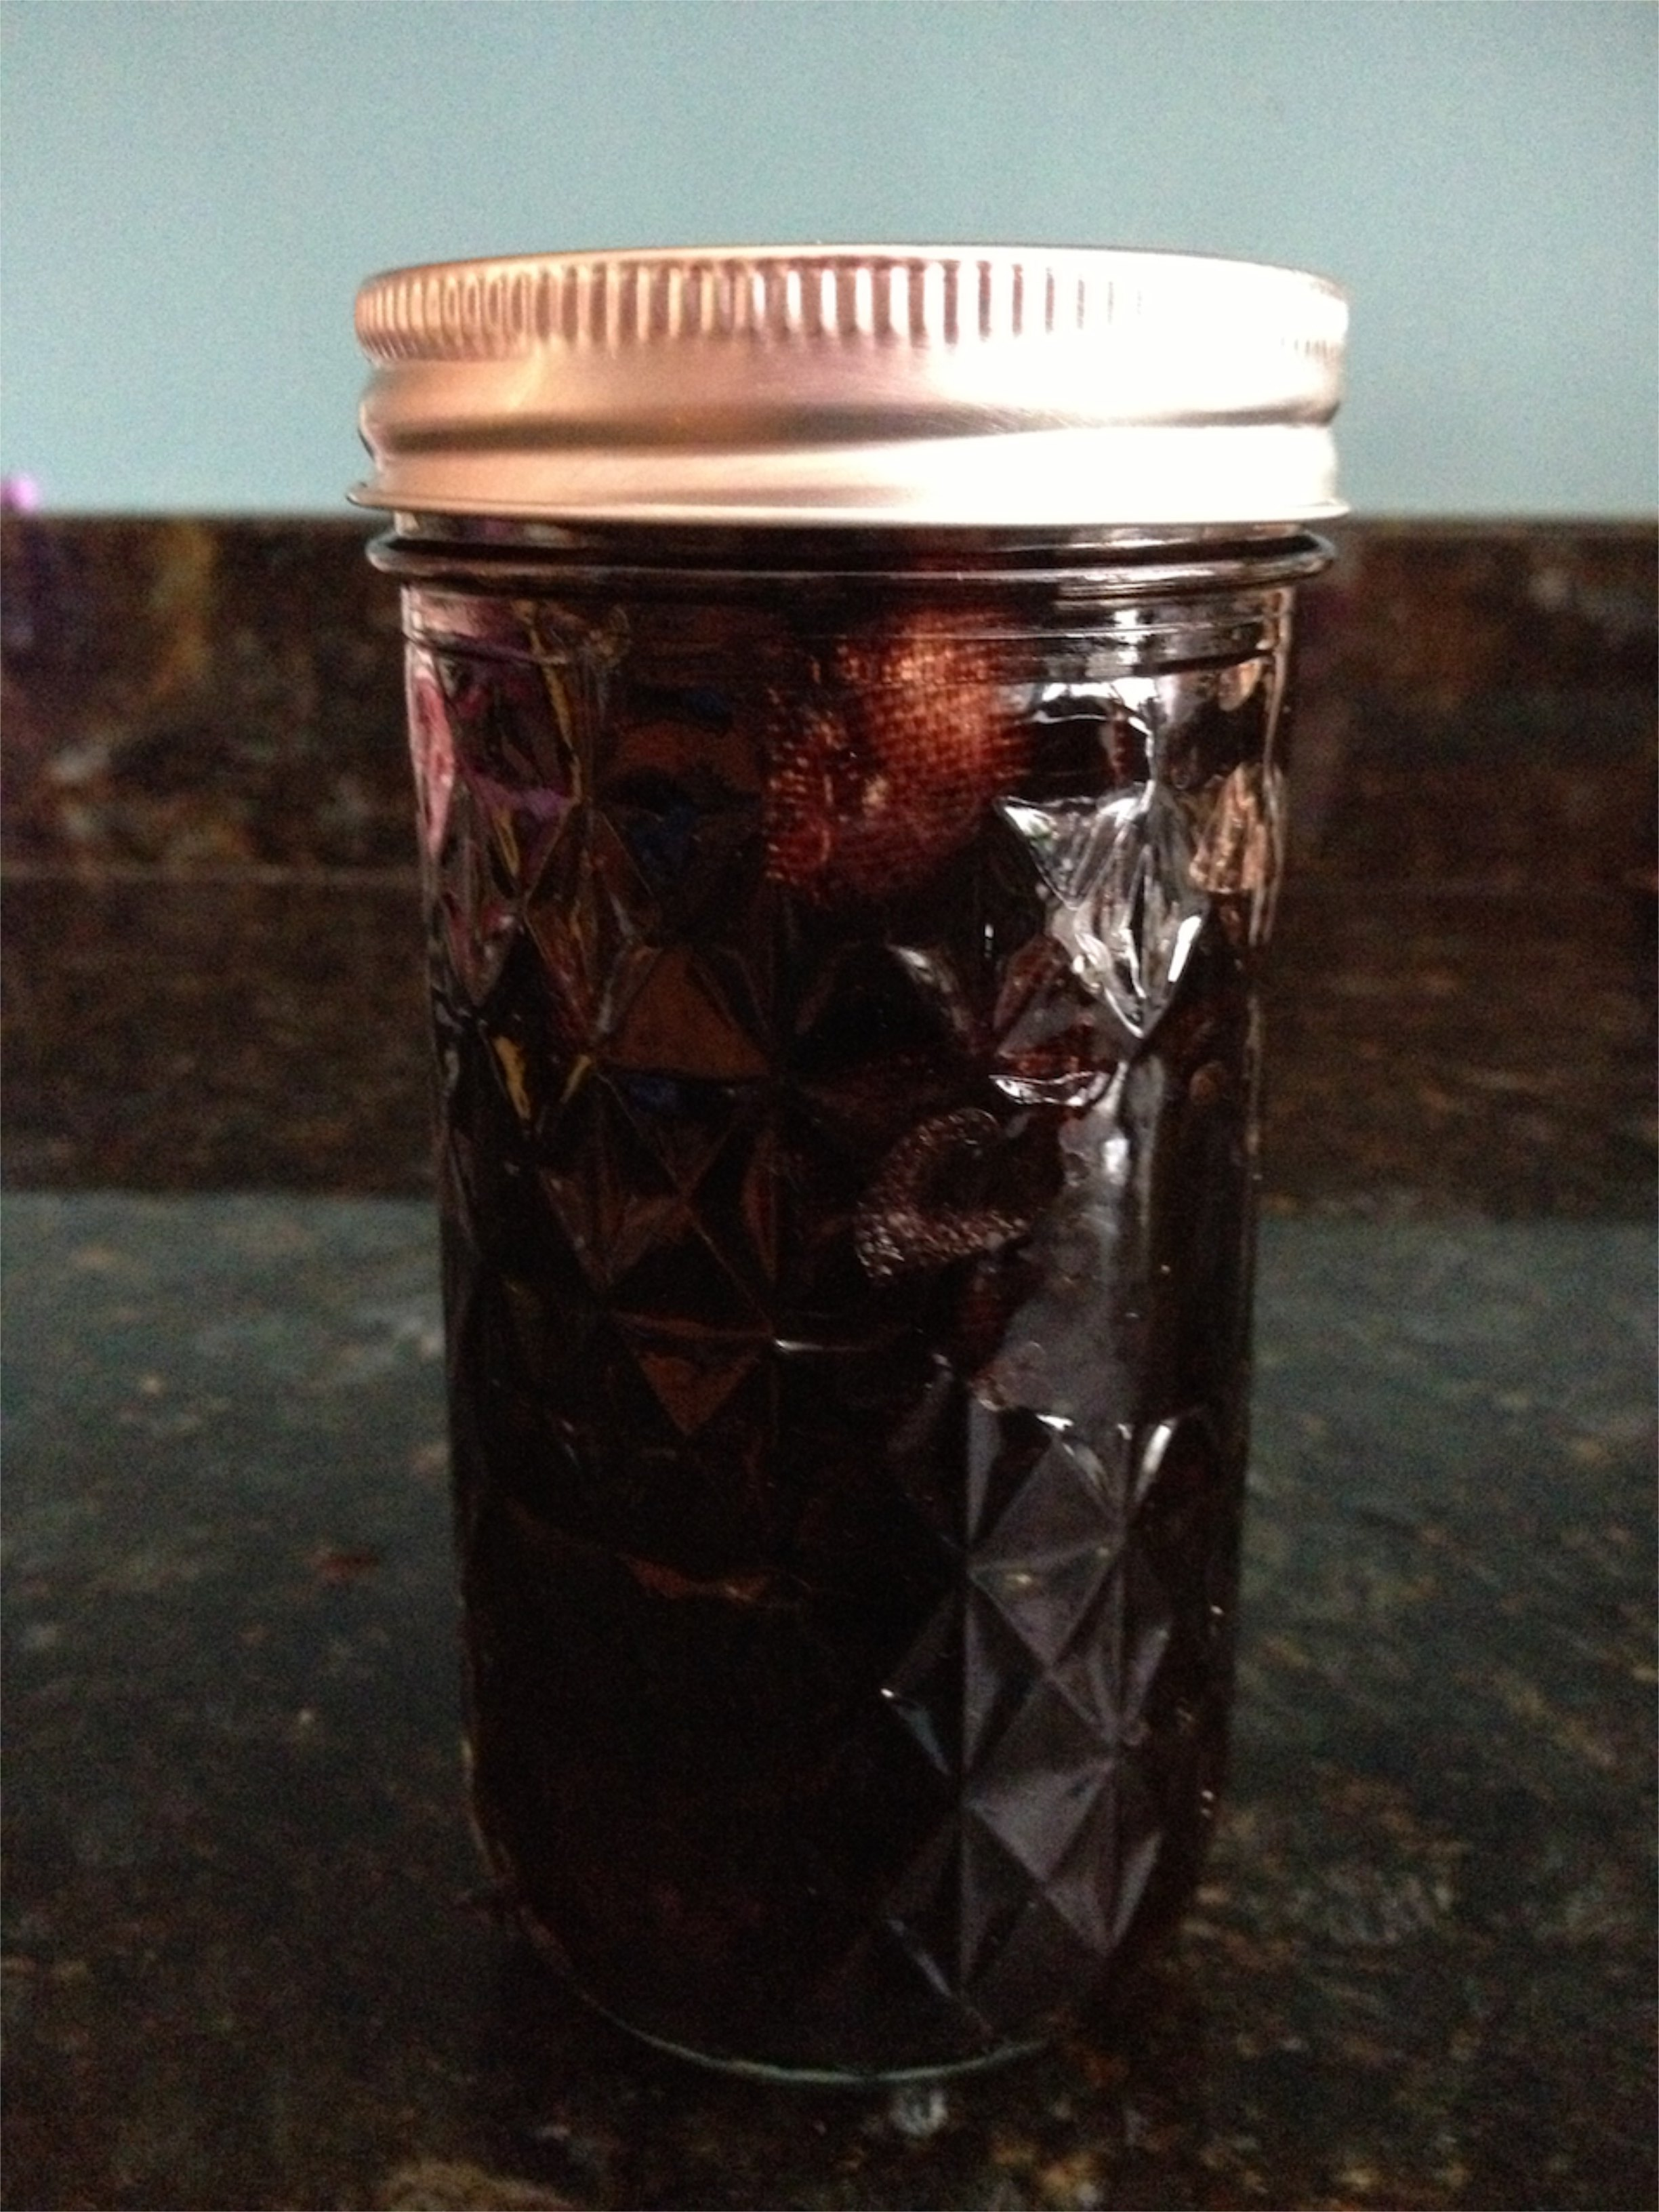 dye fabric in a jar with rit liquid dye